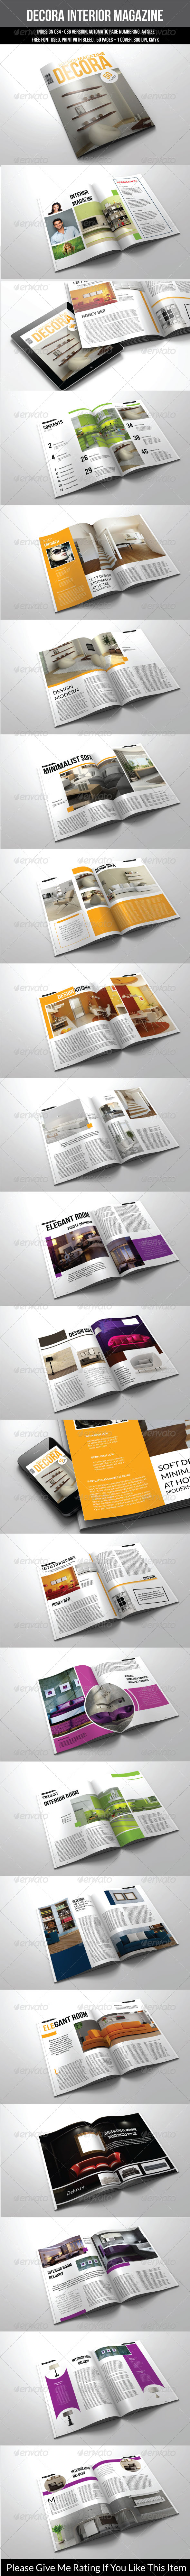 GraphicRiver 50 Pages A4 Indesign Magazine Template 7394852